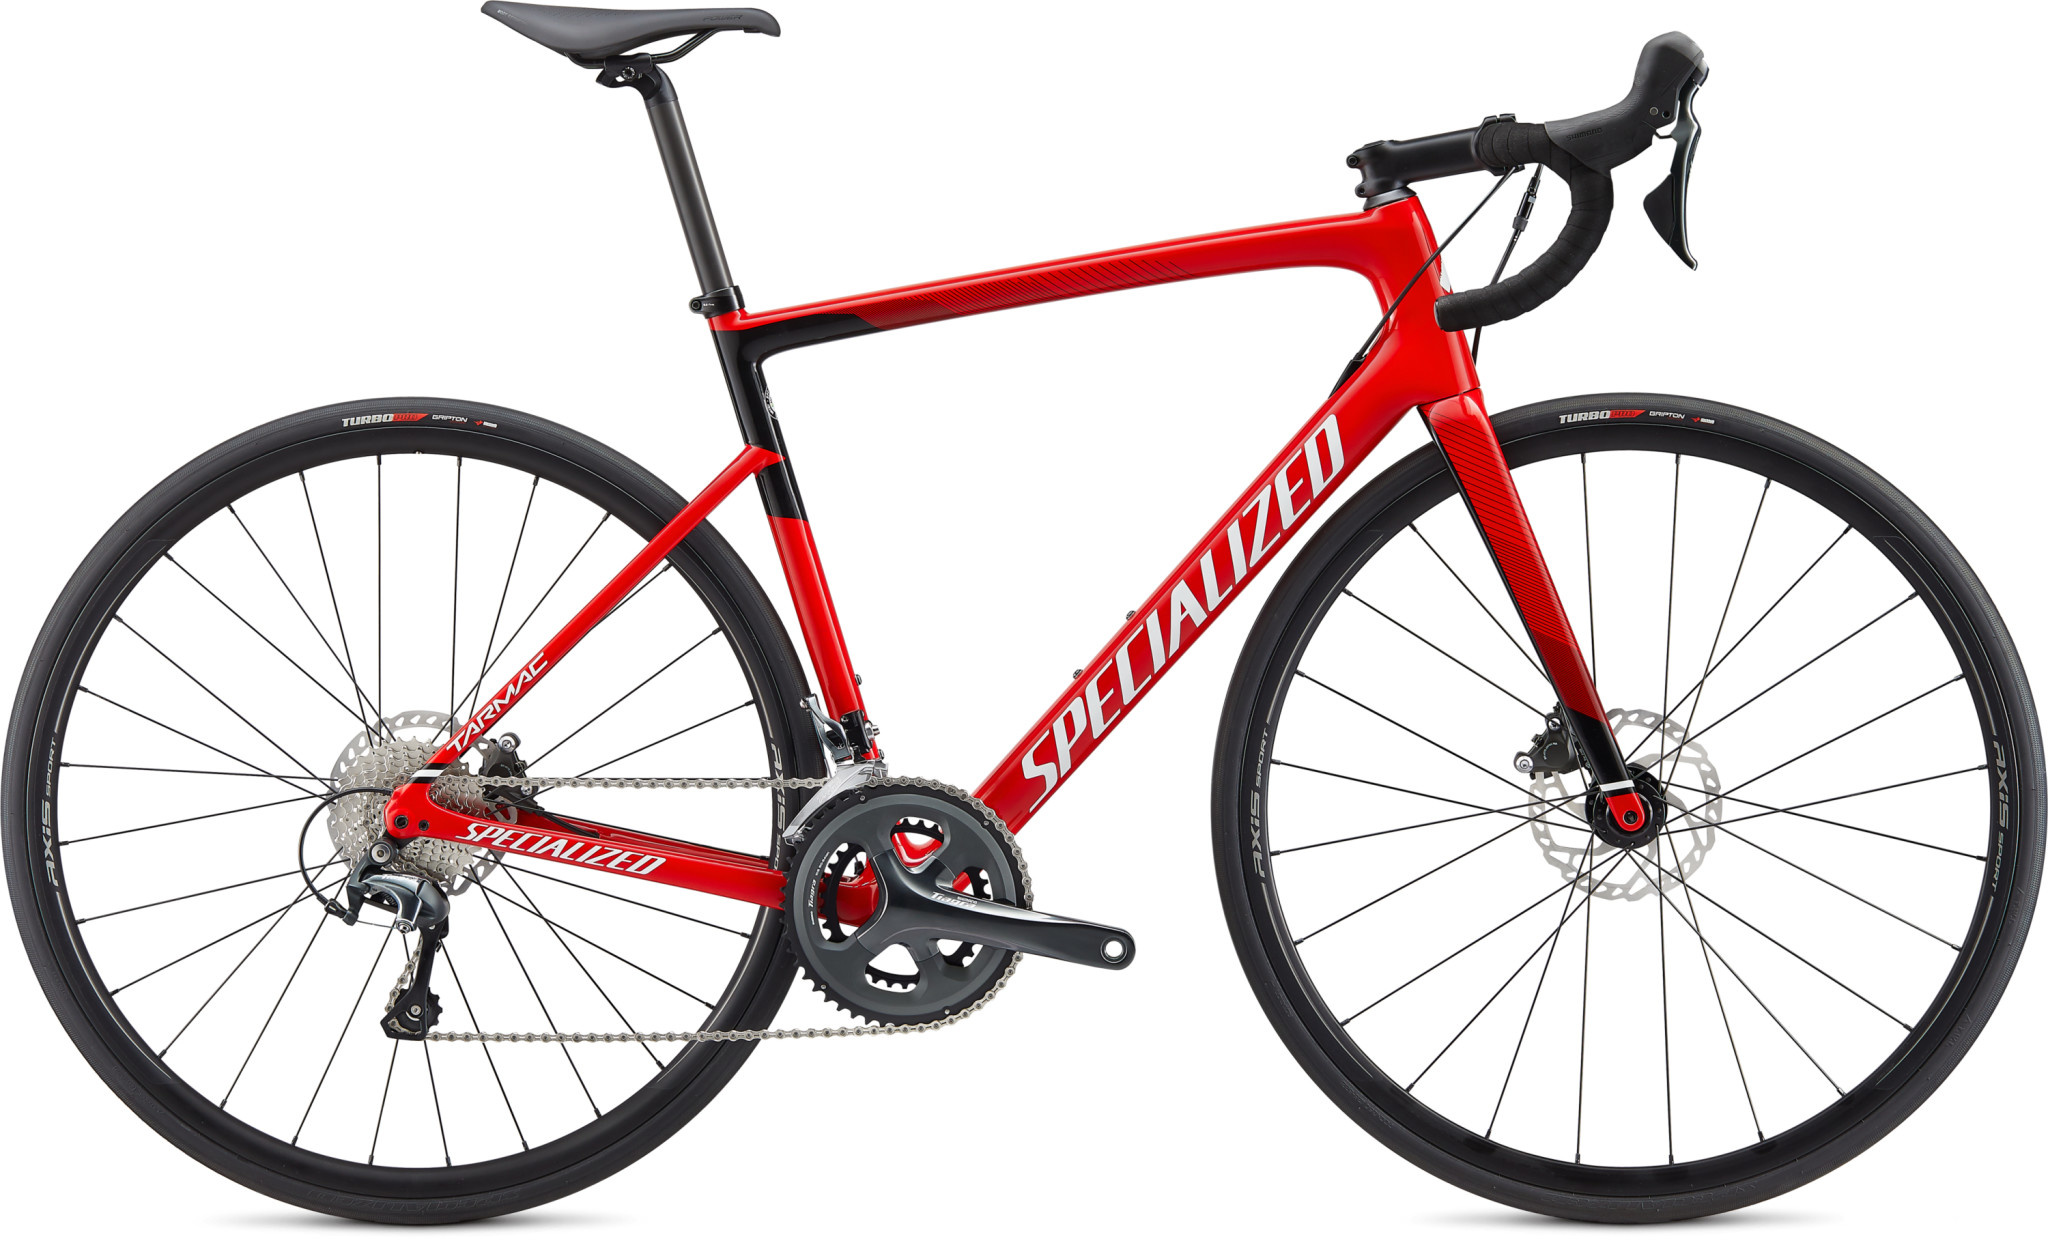 Specialized 2021 Tarmac Disc